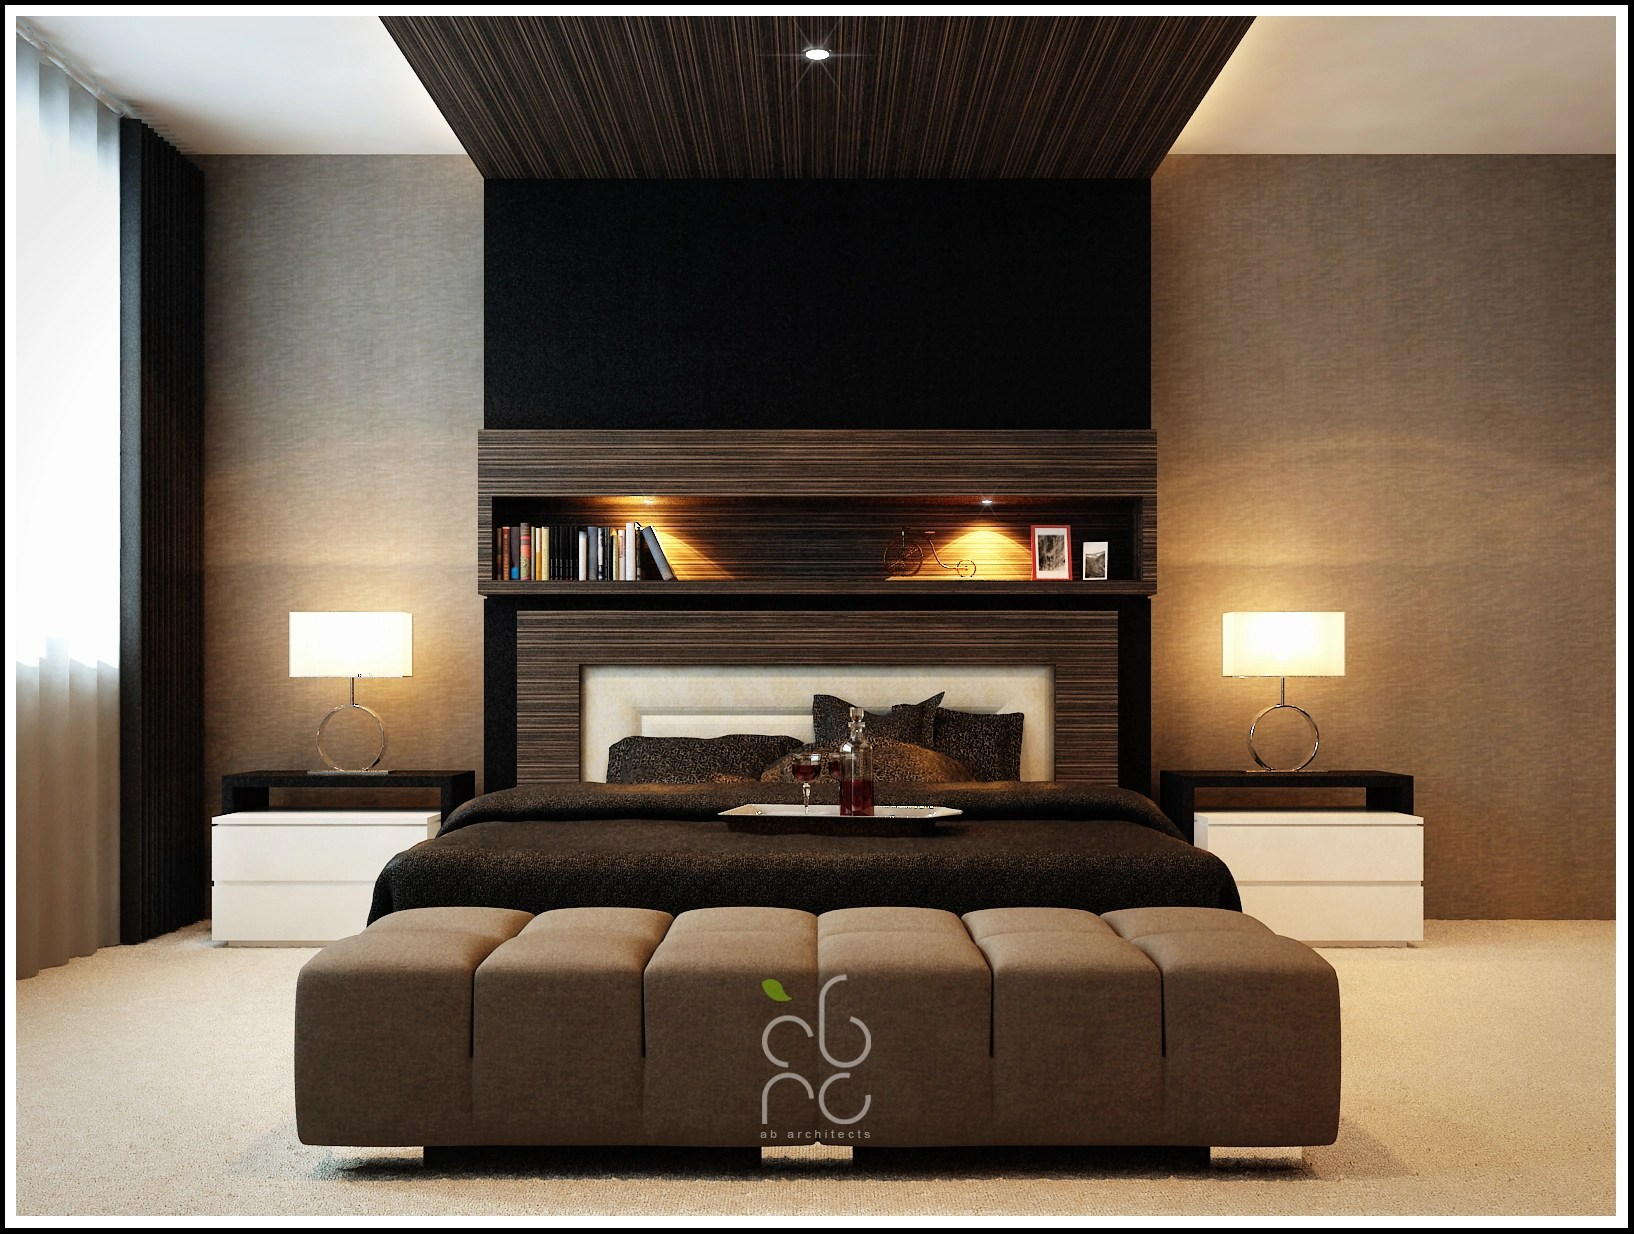 45 Master Bedroom Ideas For Your Home - The WoW Style on Best Master Bedroom Designs  id=65445